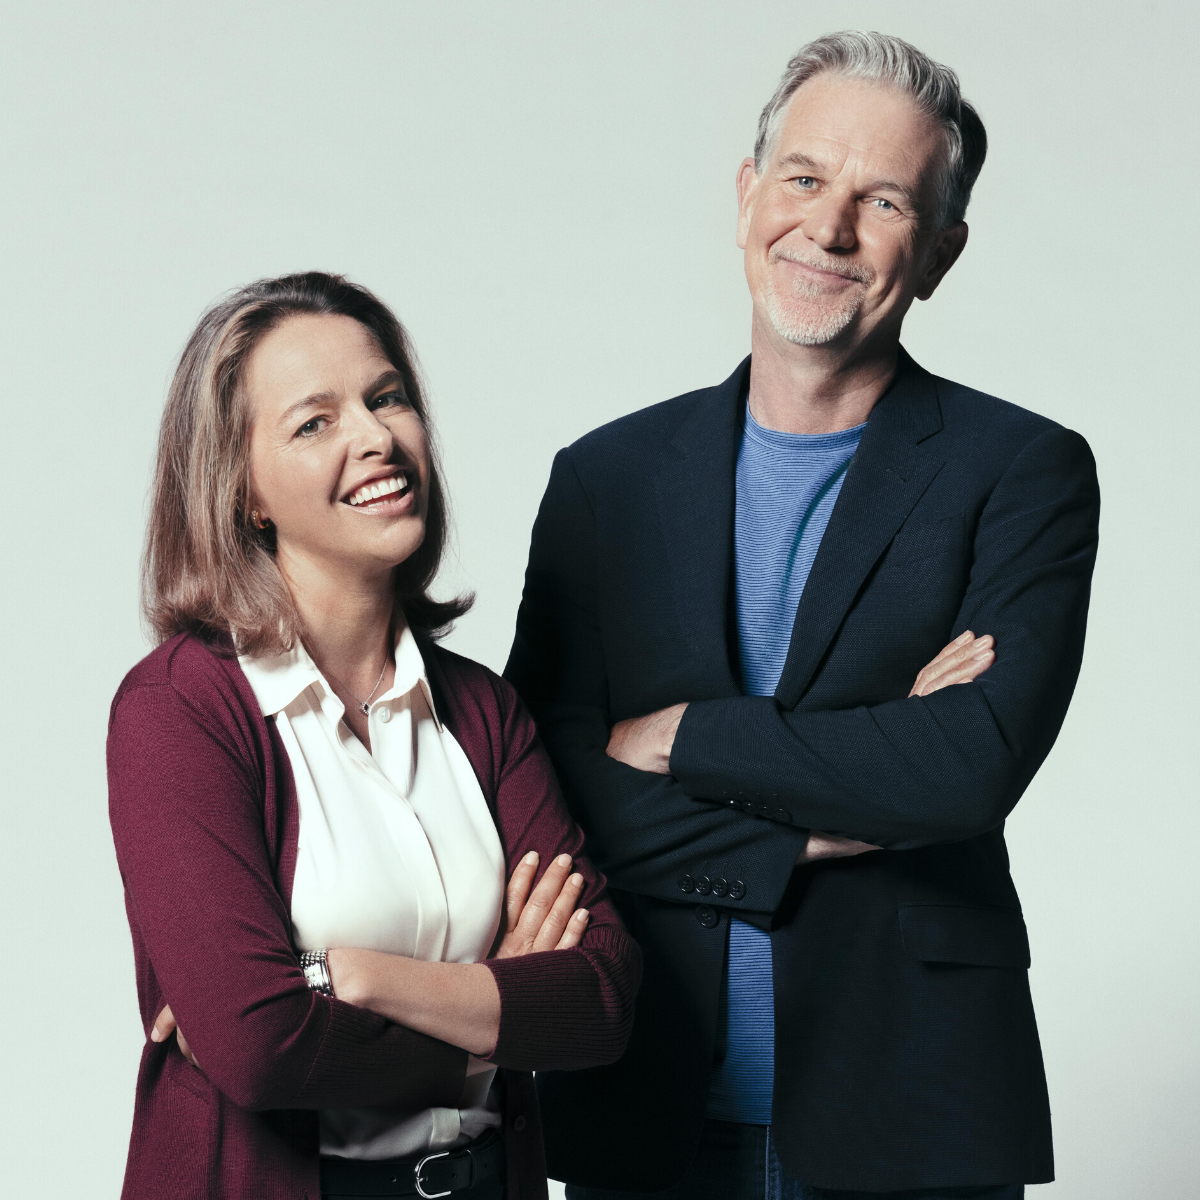 Erin Meyer and Reed Hastings, both in portrait, smiling to camera.